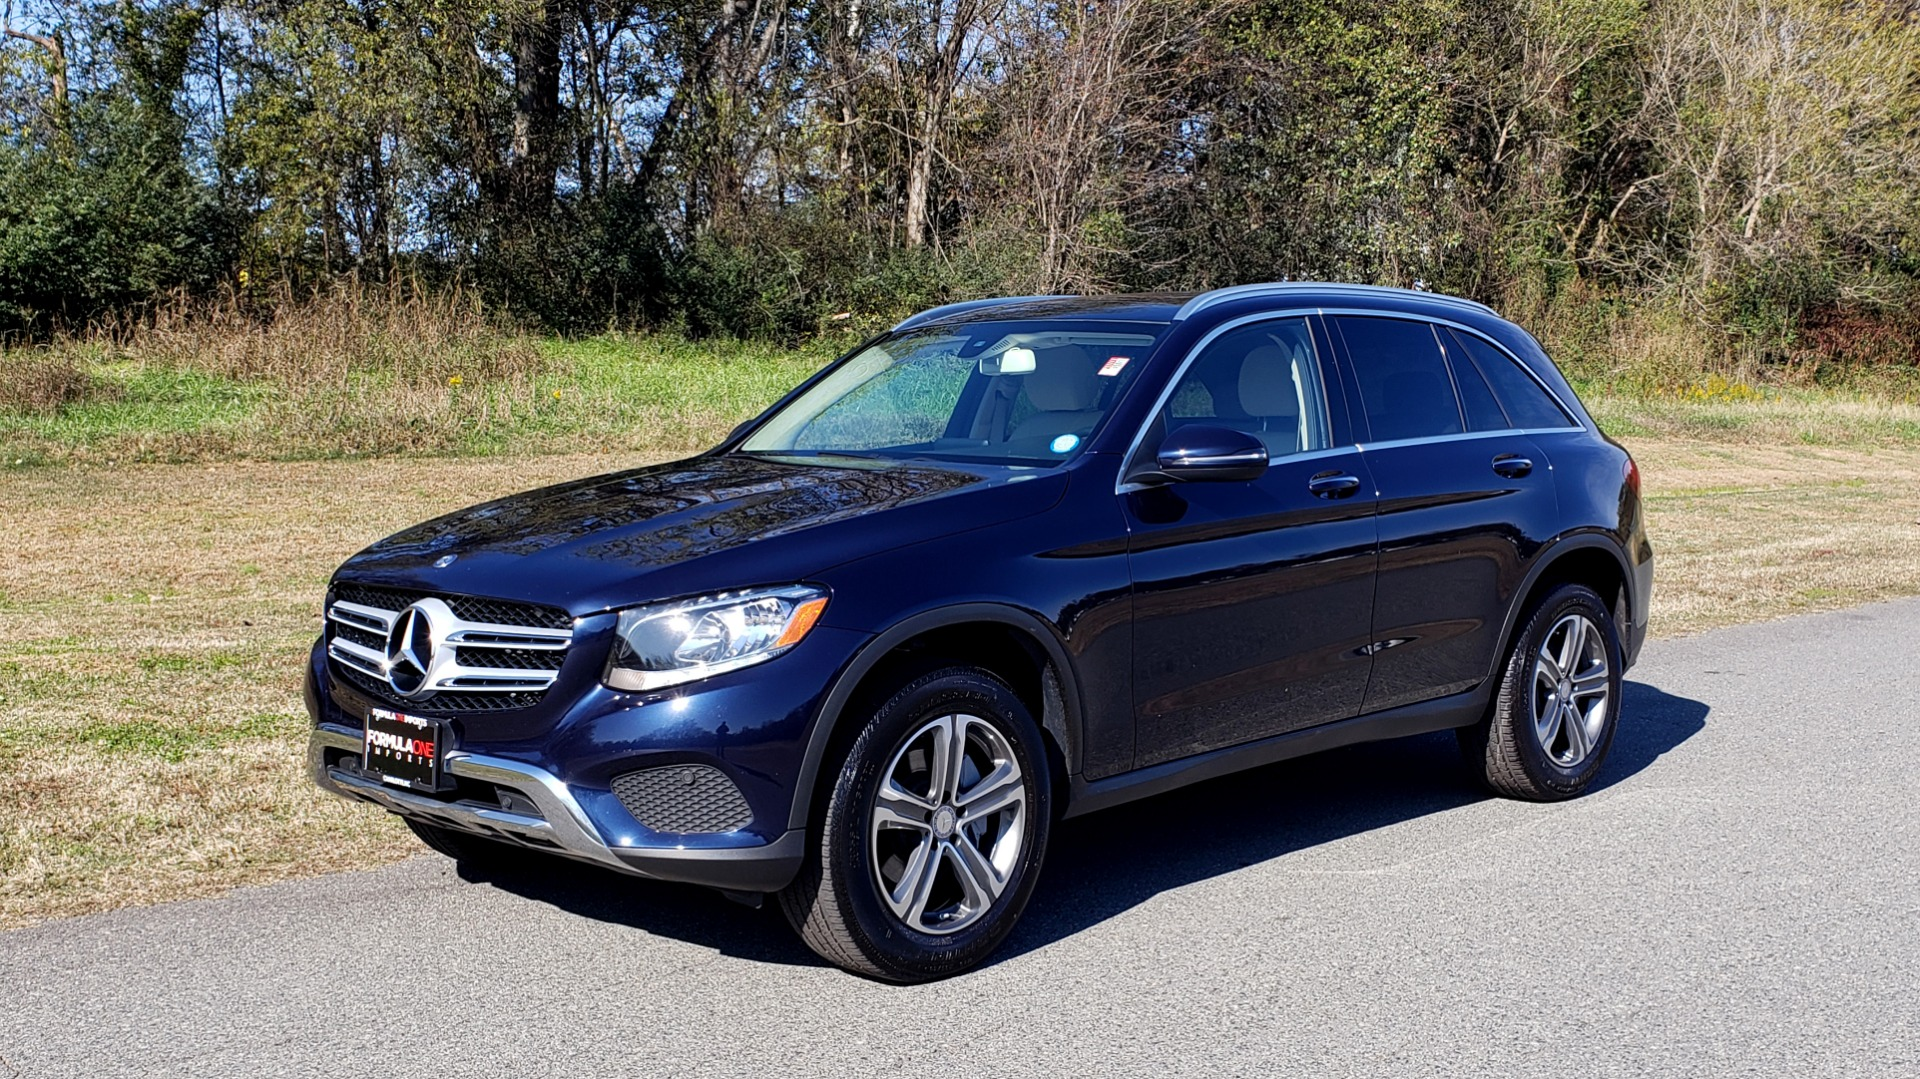 Used 2017 Mercedes-Benz GLC 300 4MATIC / PREM / NAV / KEYLESS-GO / SUNROOF / REARVIEW for sale Sold at Formula Imports in Charlotte NC 28227 1